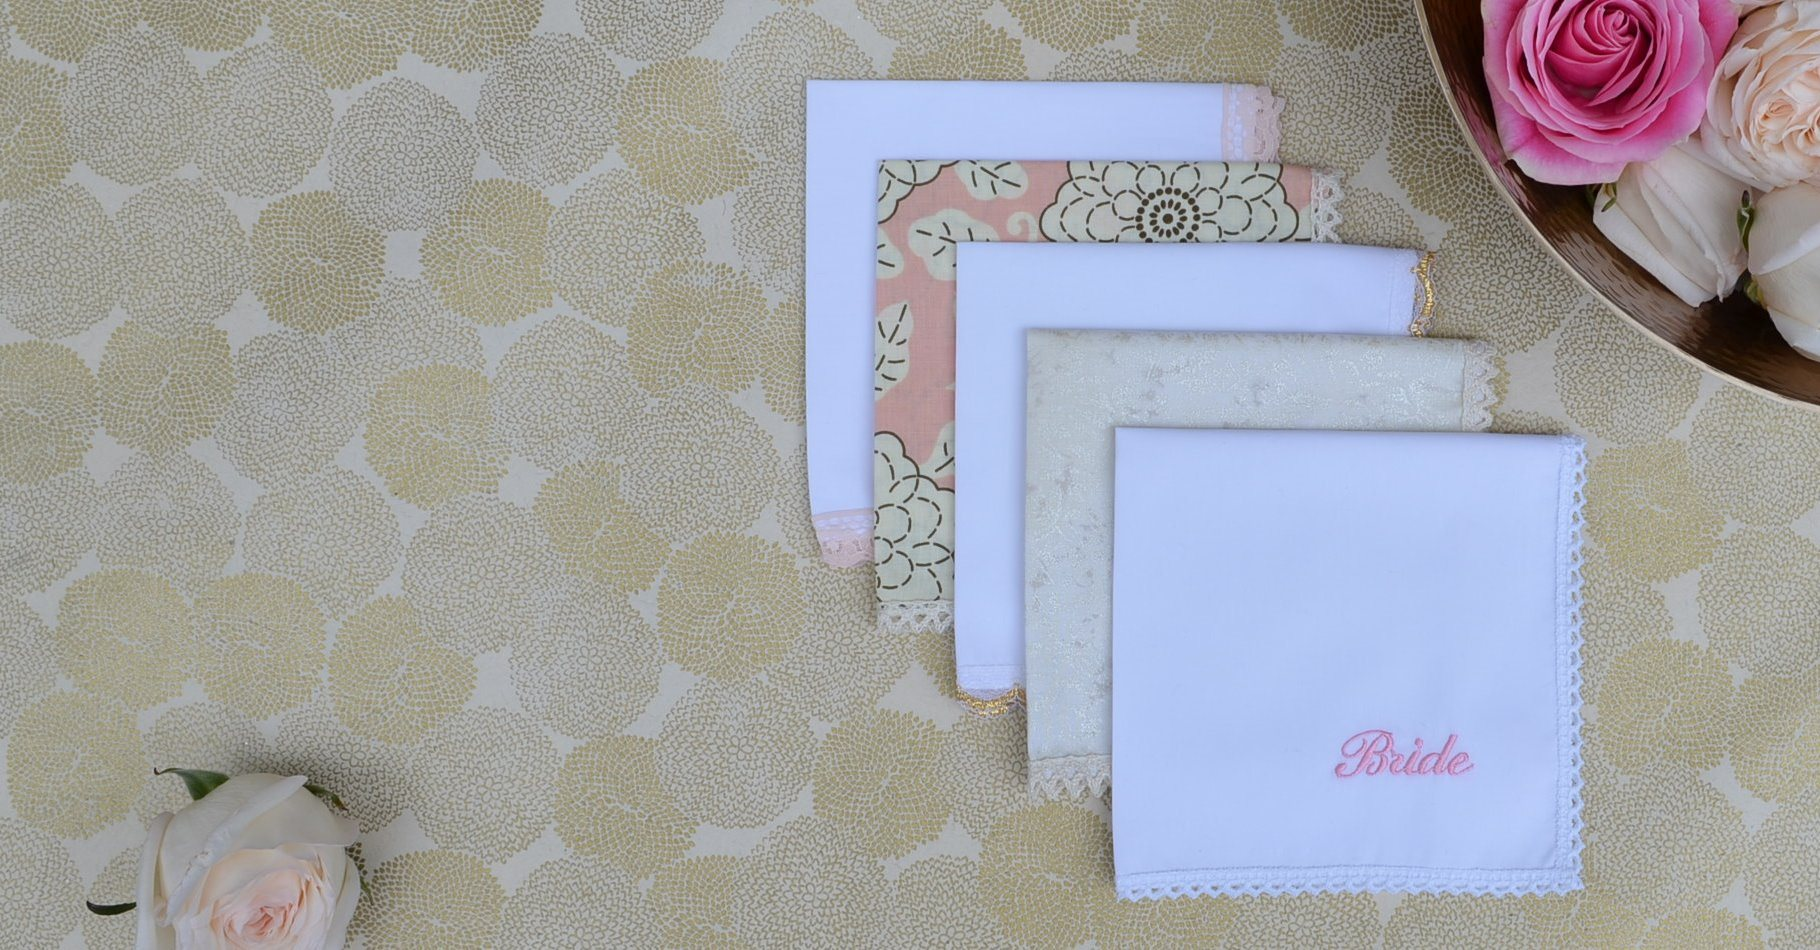 Wedding Handkerchiefs with Embroidery in White, Gold, Cream, & Blush